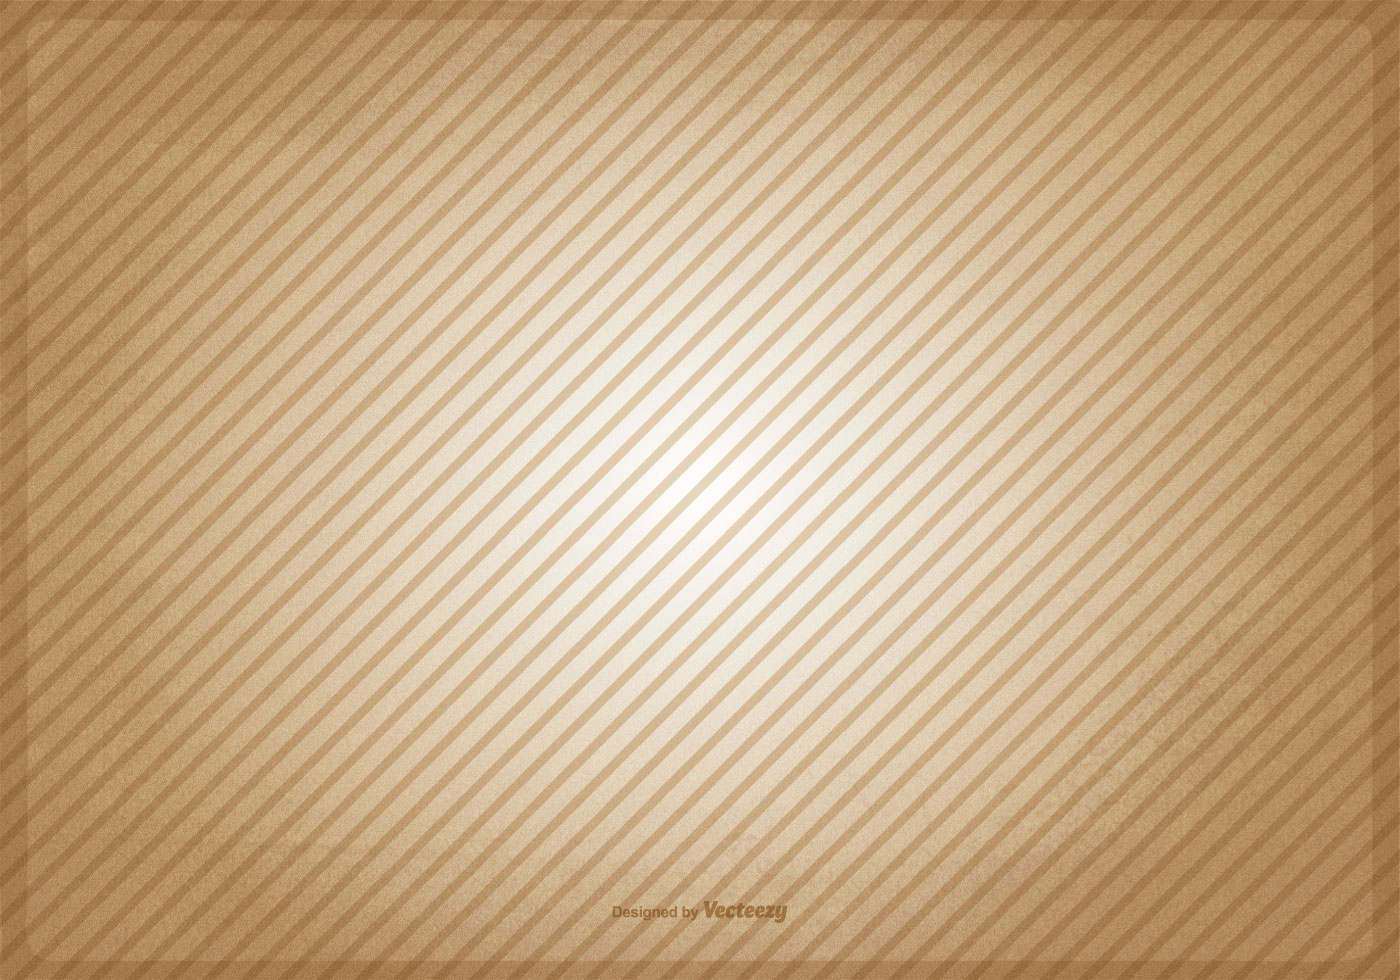 Stripe Background Texture  Download Free Vector Art Stock Graphics  Images